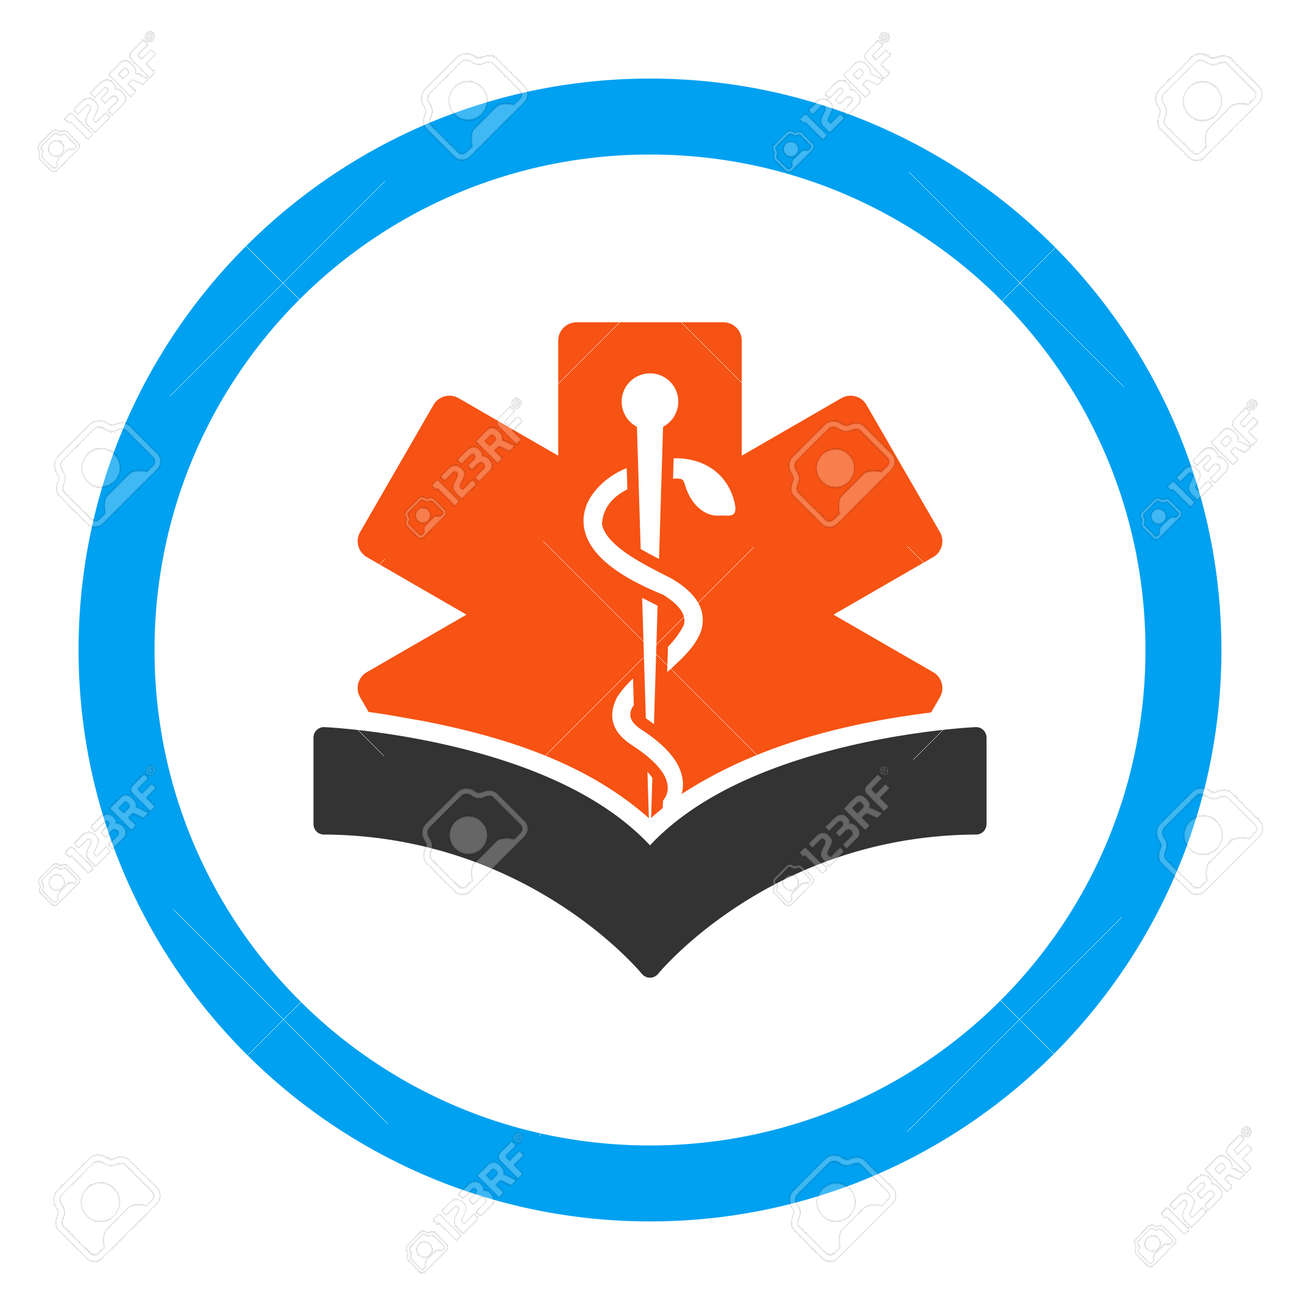 medical knowledge vector icon style is flat rounded symbol rh 123rf com vector medical group vector medical transport